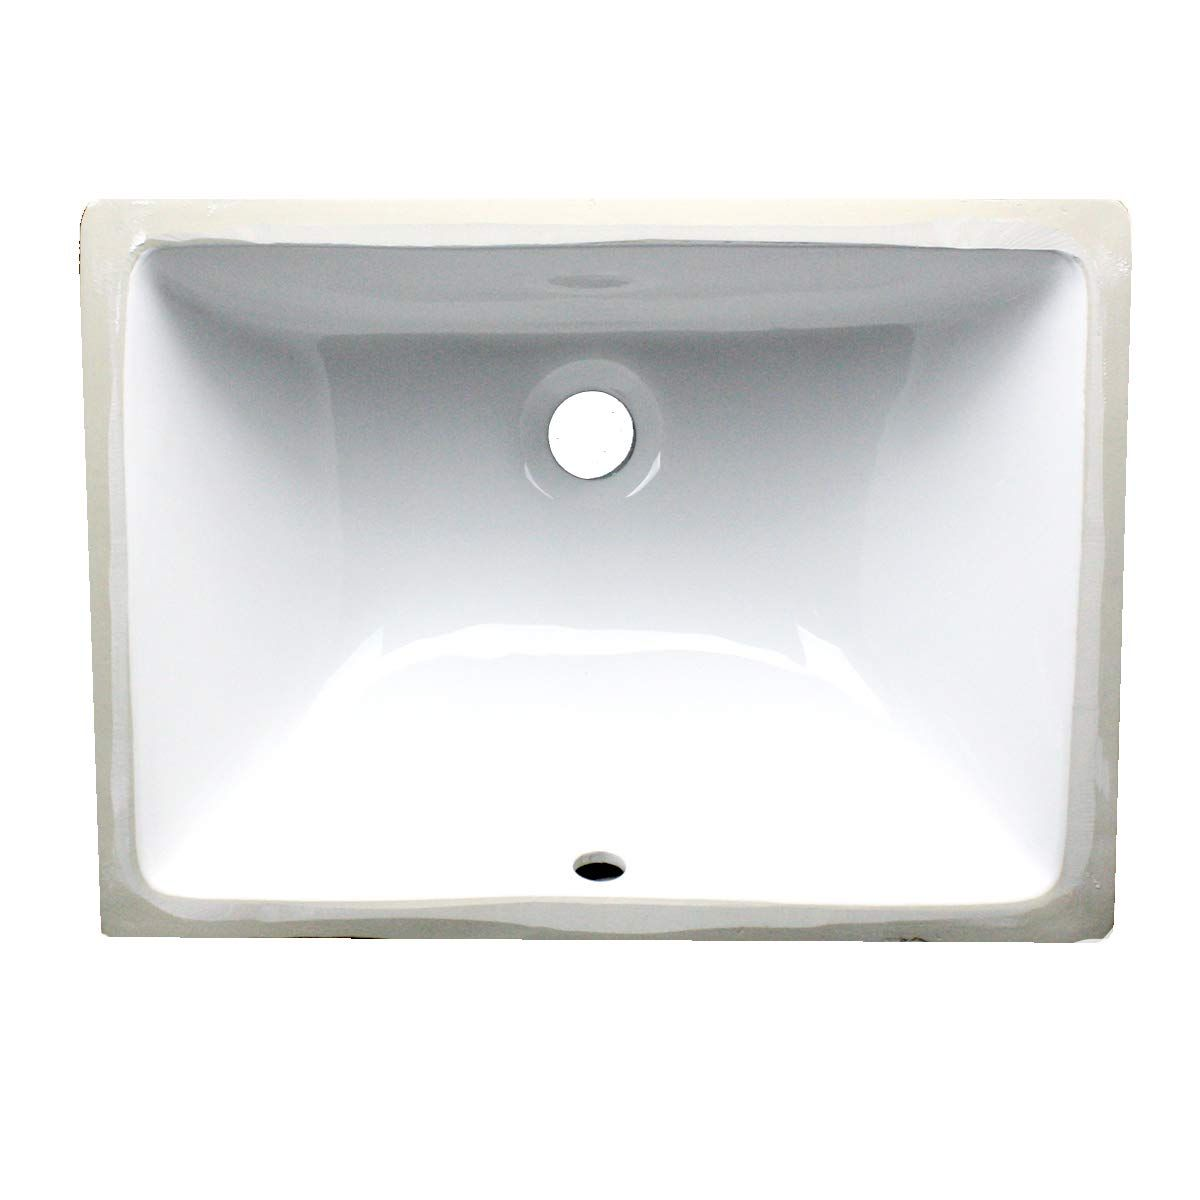 Nantucket Sinks Um 16x11 W 16 Inch By 11 Inch Rectangle Ceramic Undermount Vanity White Check Out The Image By Small Bathroom Sinks Bathroom Sink Tops Sink